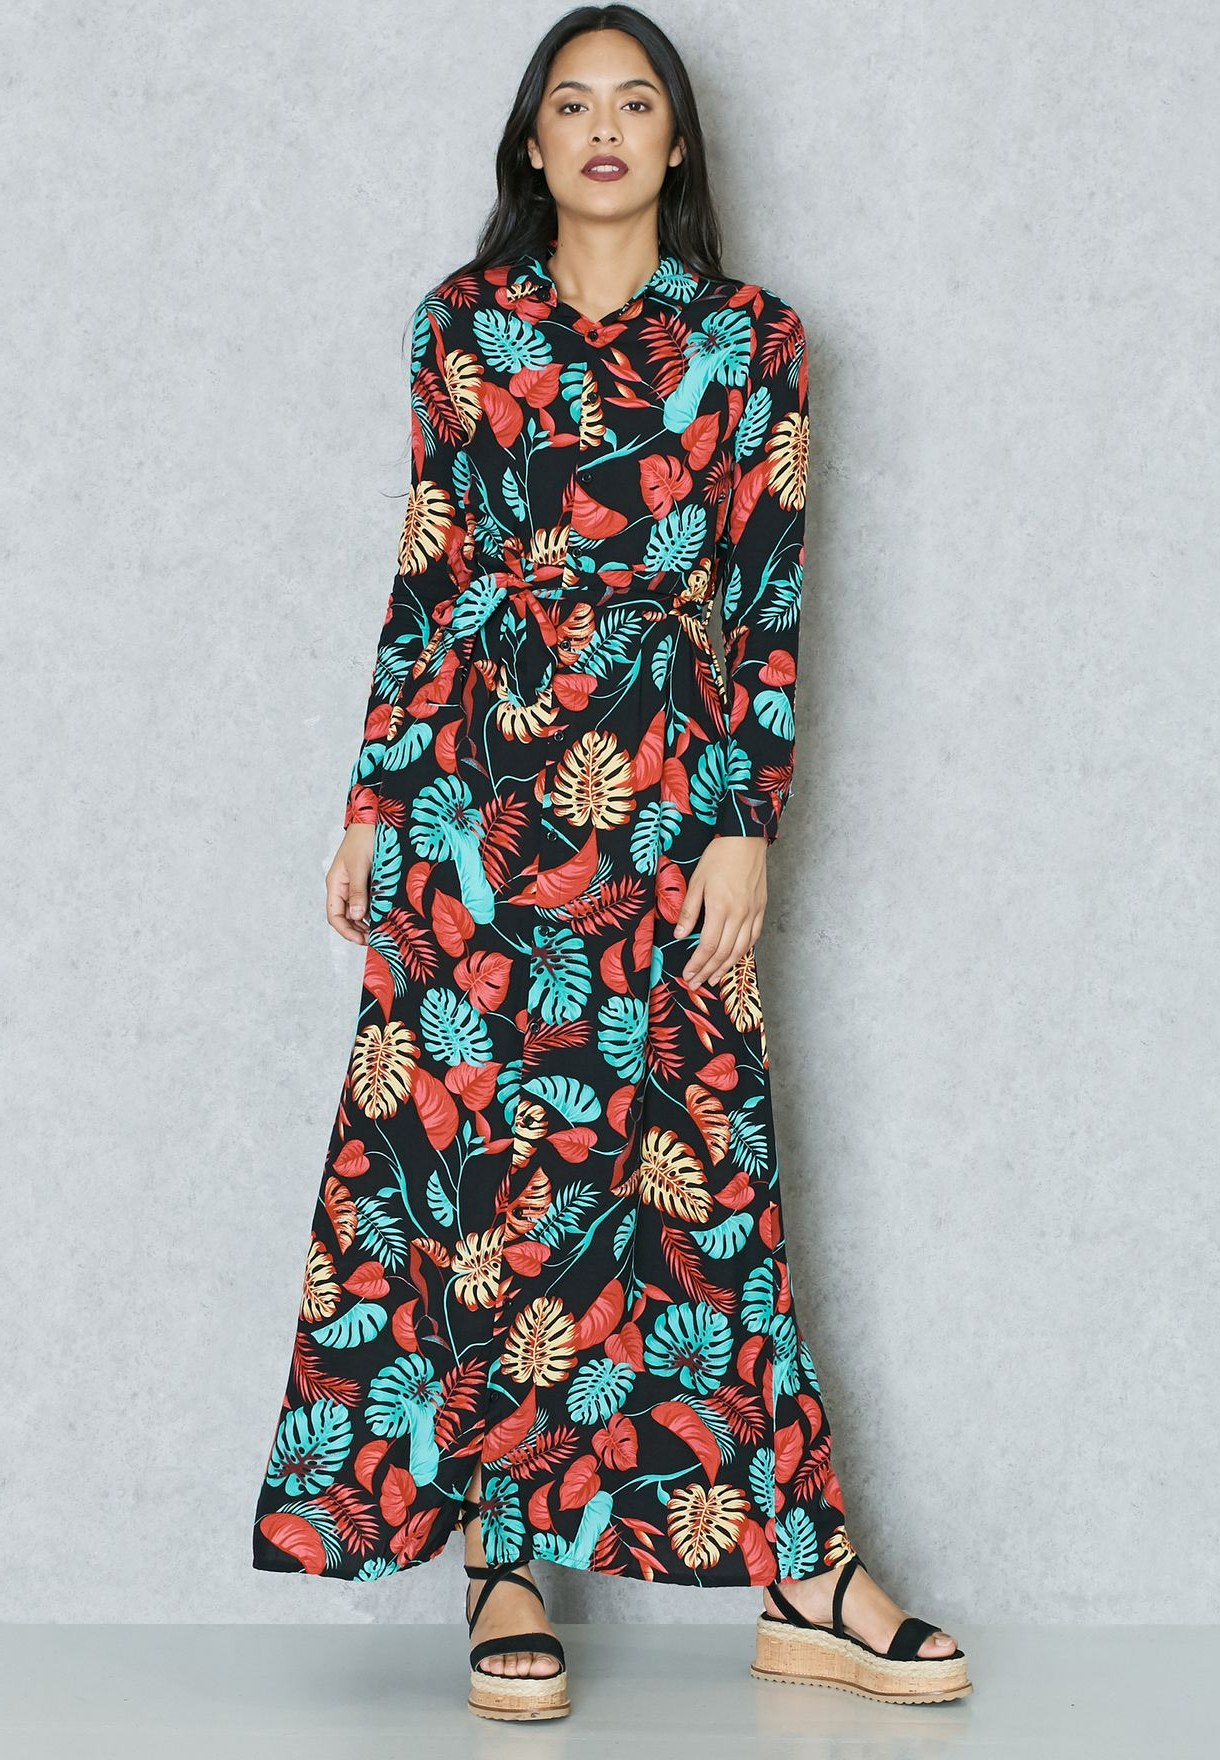 Design Model Dress Bridesmaid Hijab Thdr Floral Print Self Tie Shirt Maxi Dress